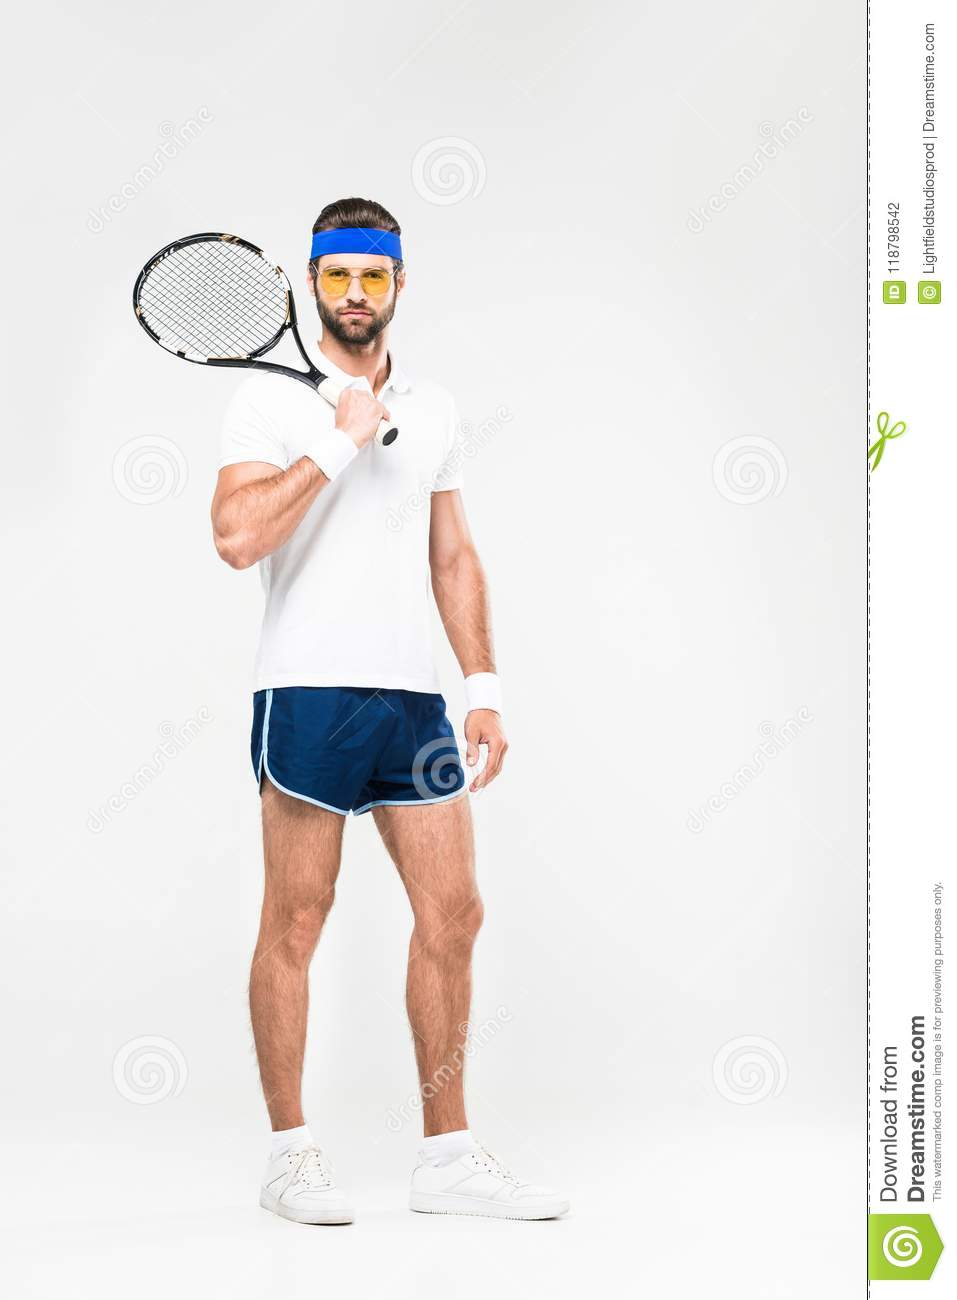 05a78162a81 Handsome Tennis Player In Retro Sunglasses With Racket